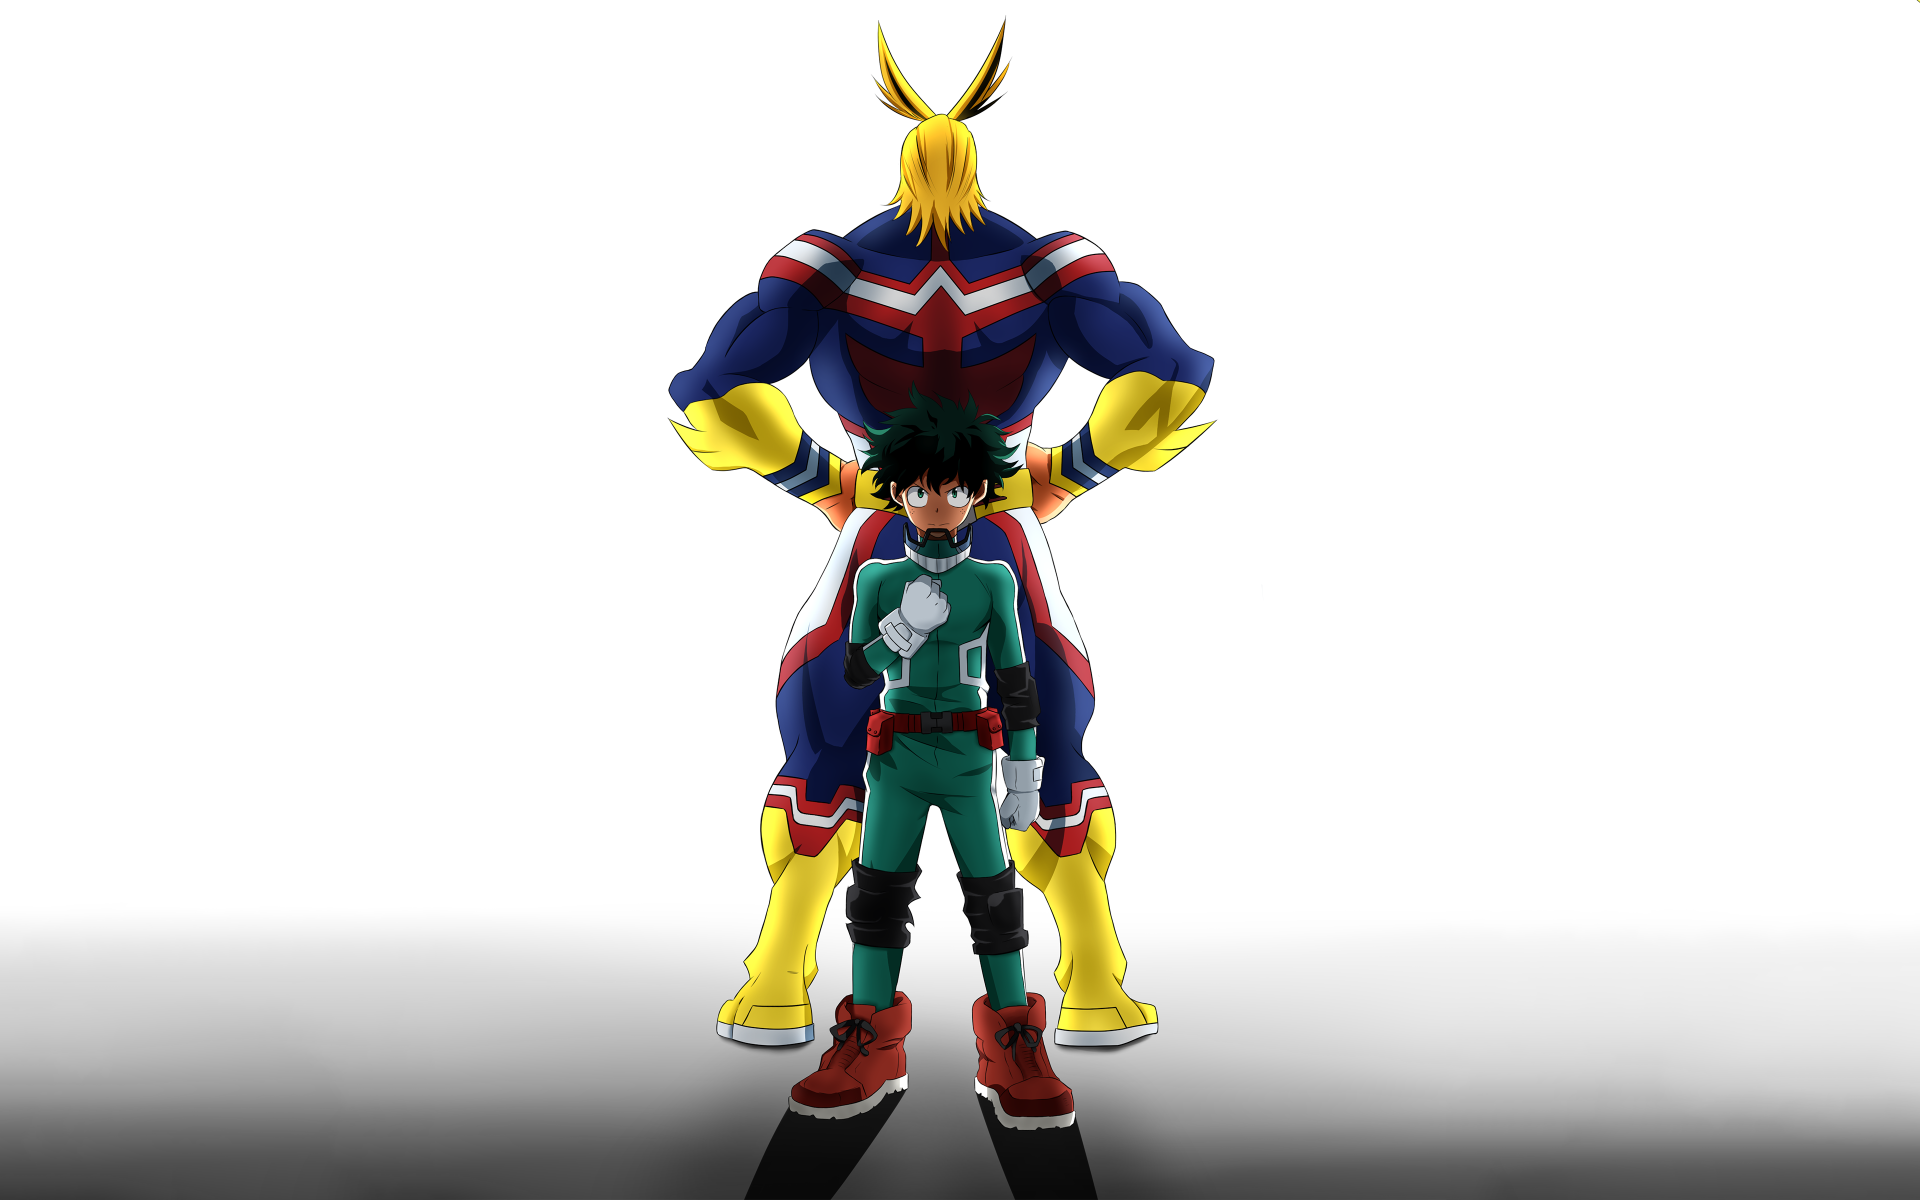 Anime - Boku No Hero Academia  Izuku Midoriya All Might Wallpaper